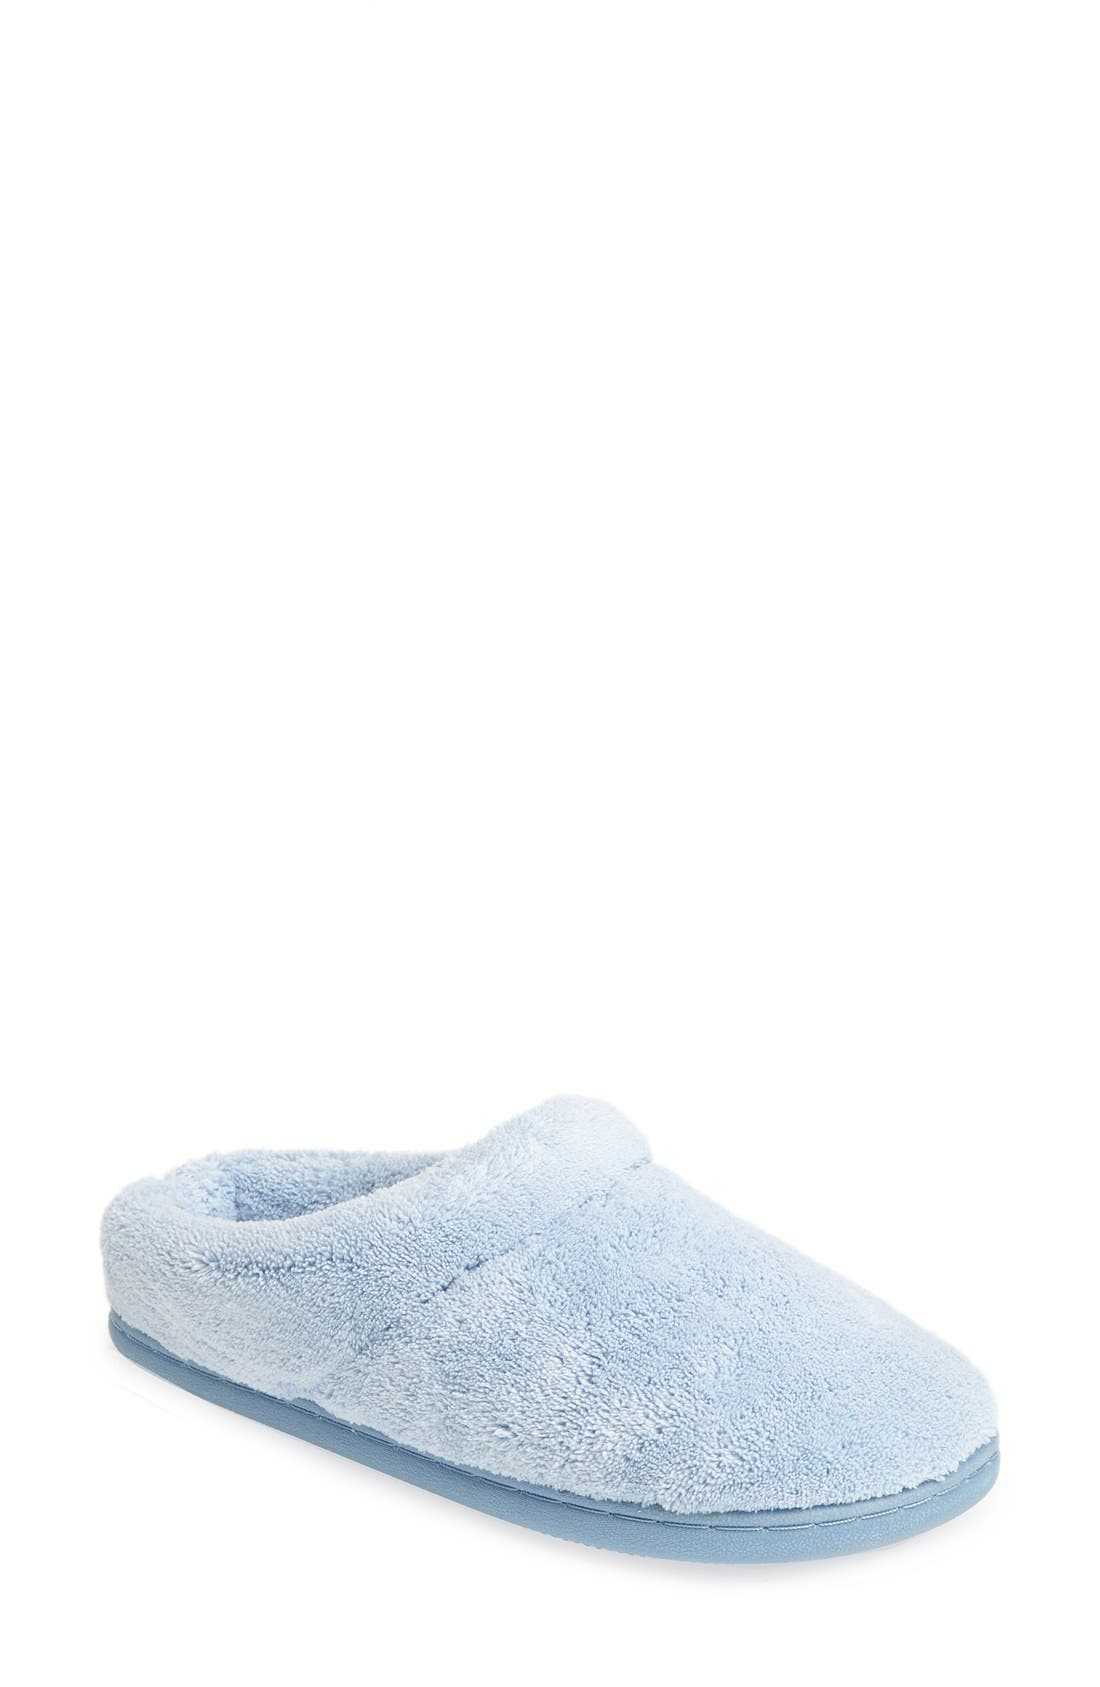 'Windsock' Slipper,                         Main,                         color, Light Blue